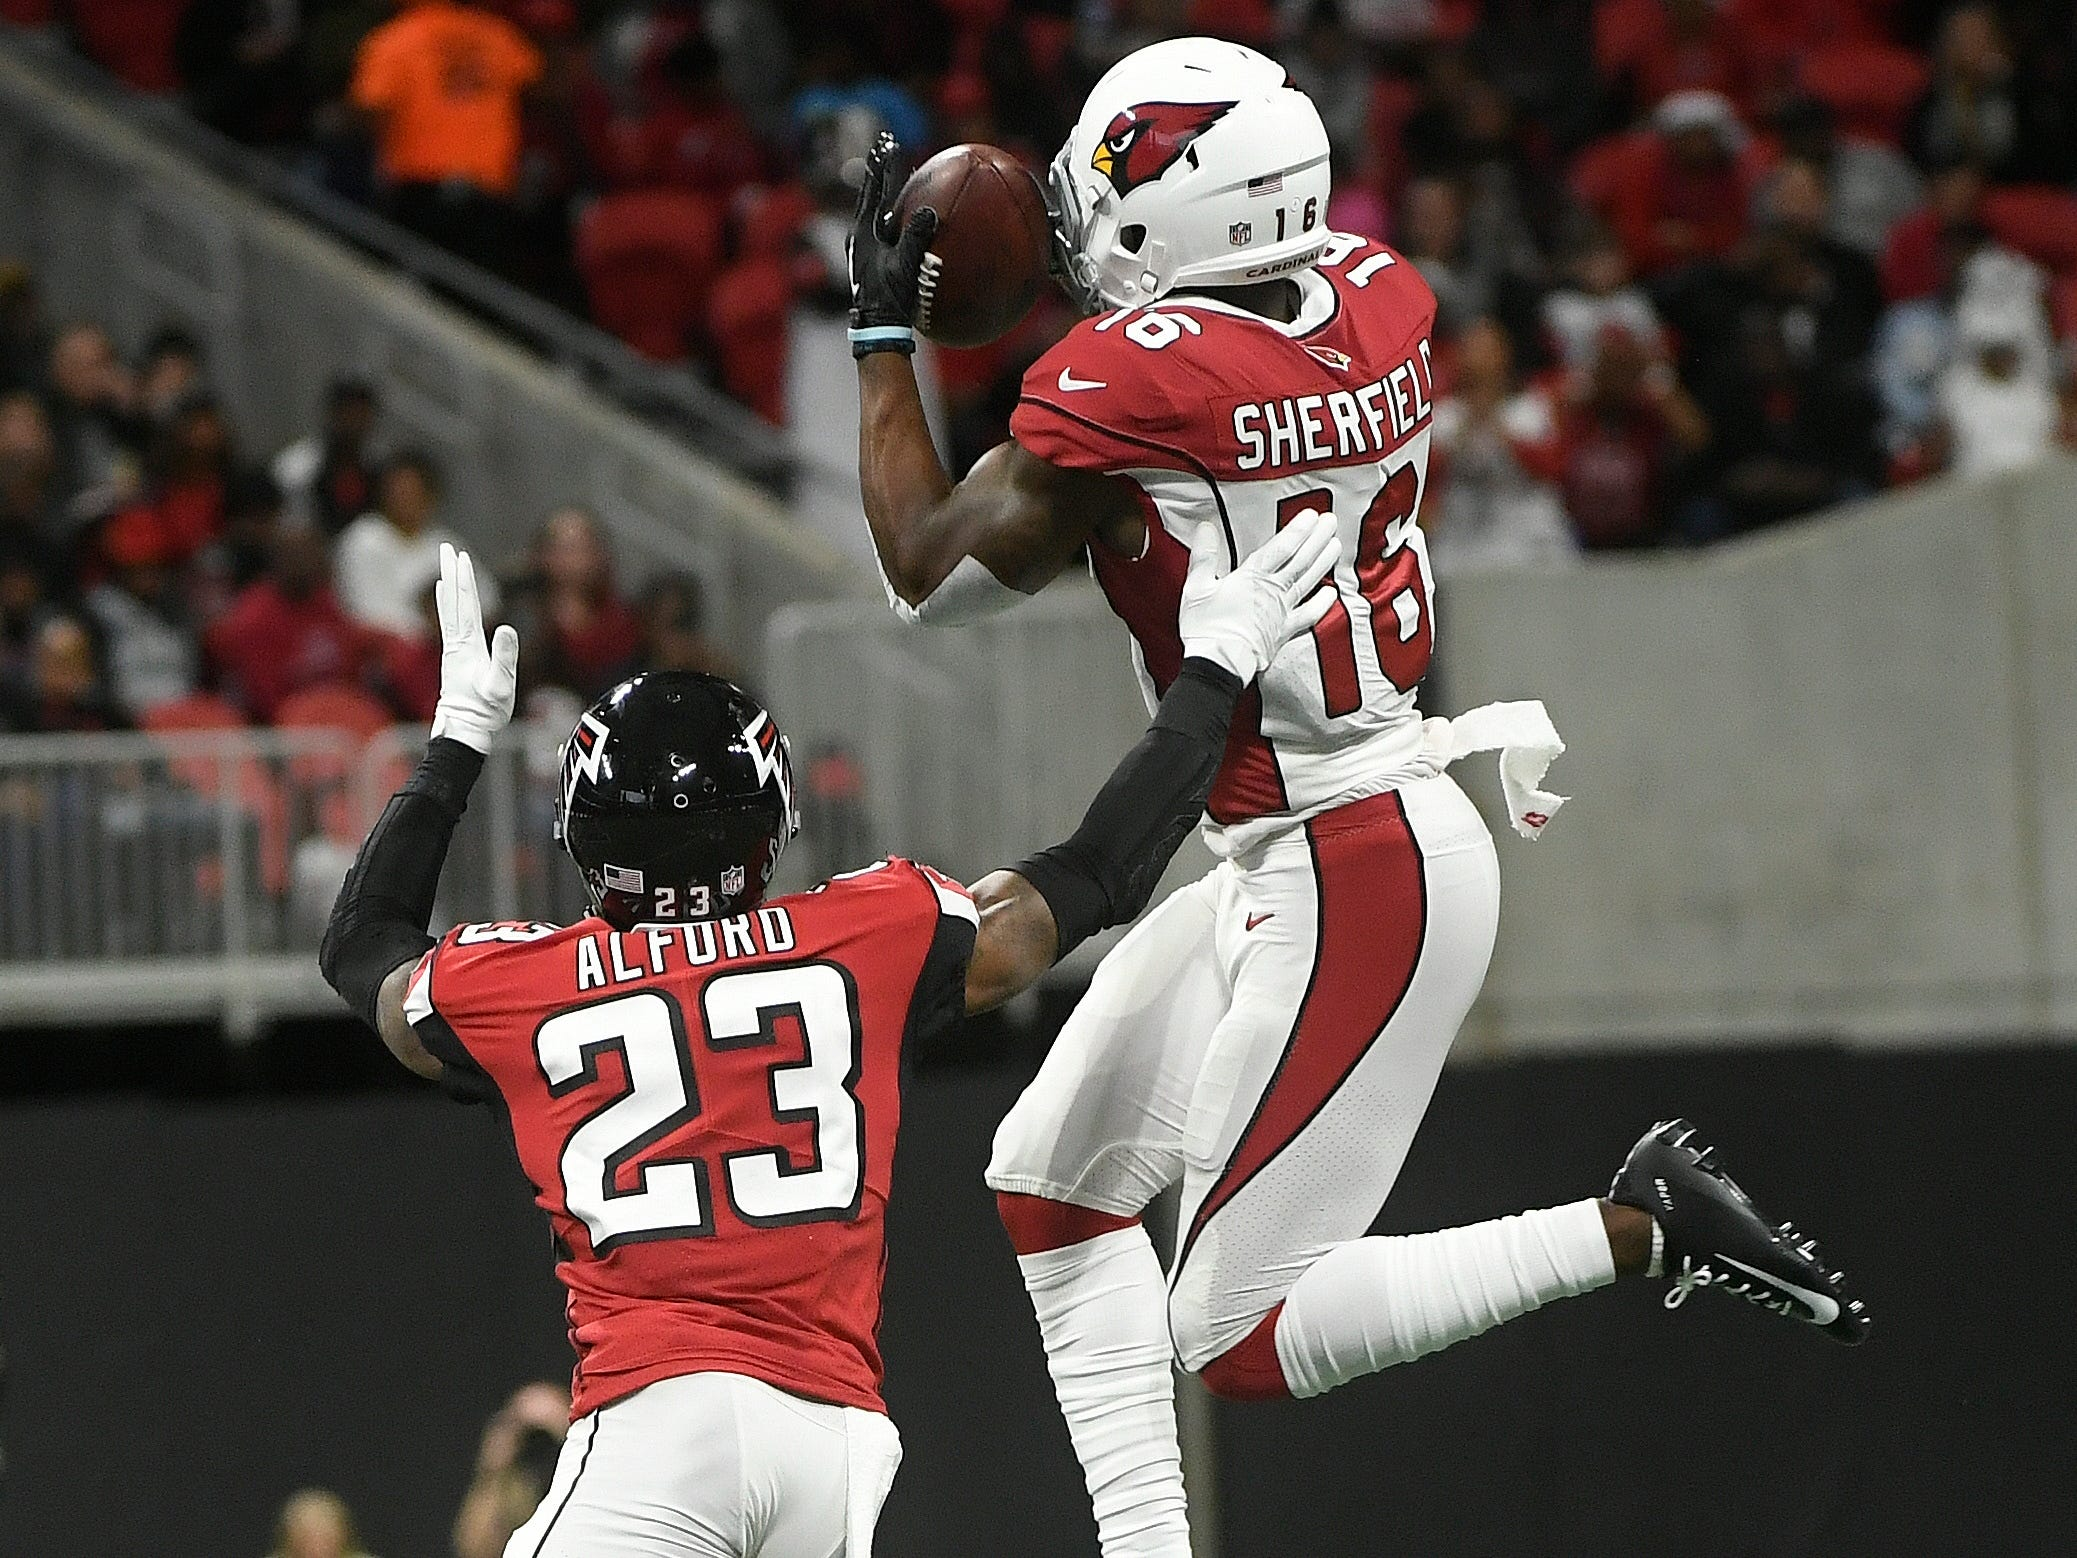 Arizona Cardinals wide receiver Trent Sherfield (16) makes the catch against Atlanta Falcons cornerback Robert Alford (23) during the first half of an NFL football game, Sunday, Dec. 16, 2018, in Atlanta.